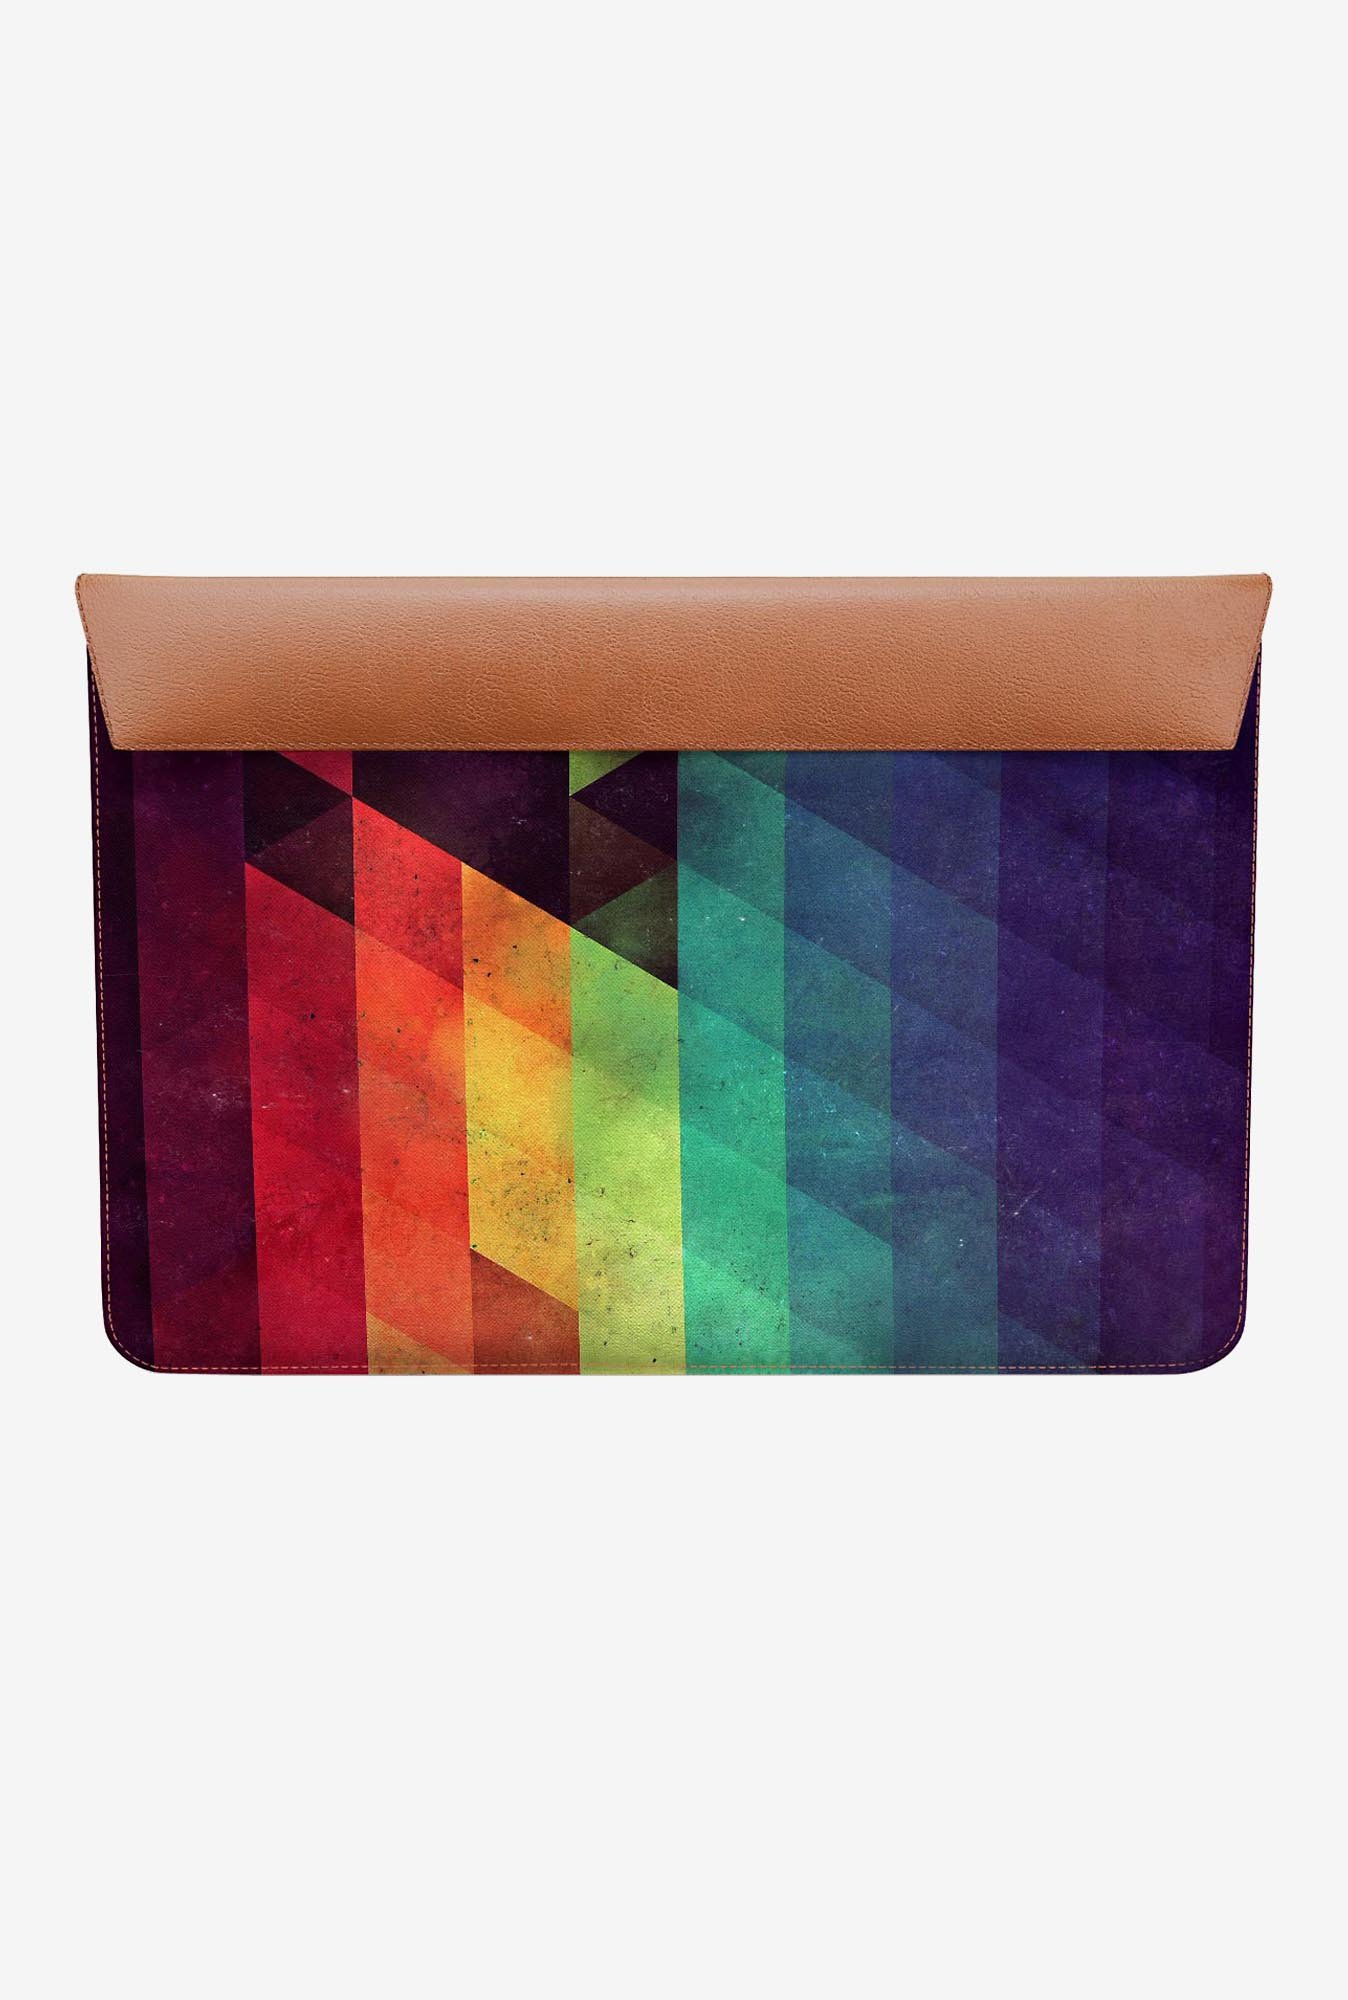 "DailyObjects Ryvyngg Hrxtl Macbook Air 11"" Envelope Sleeve"